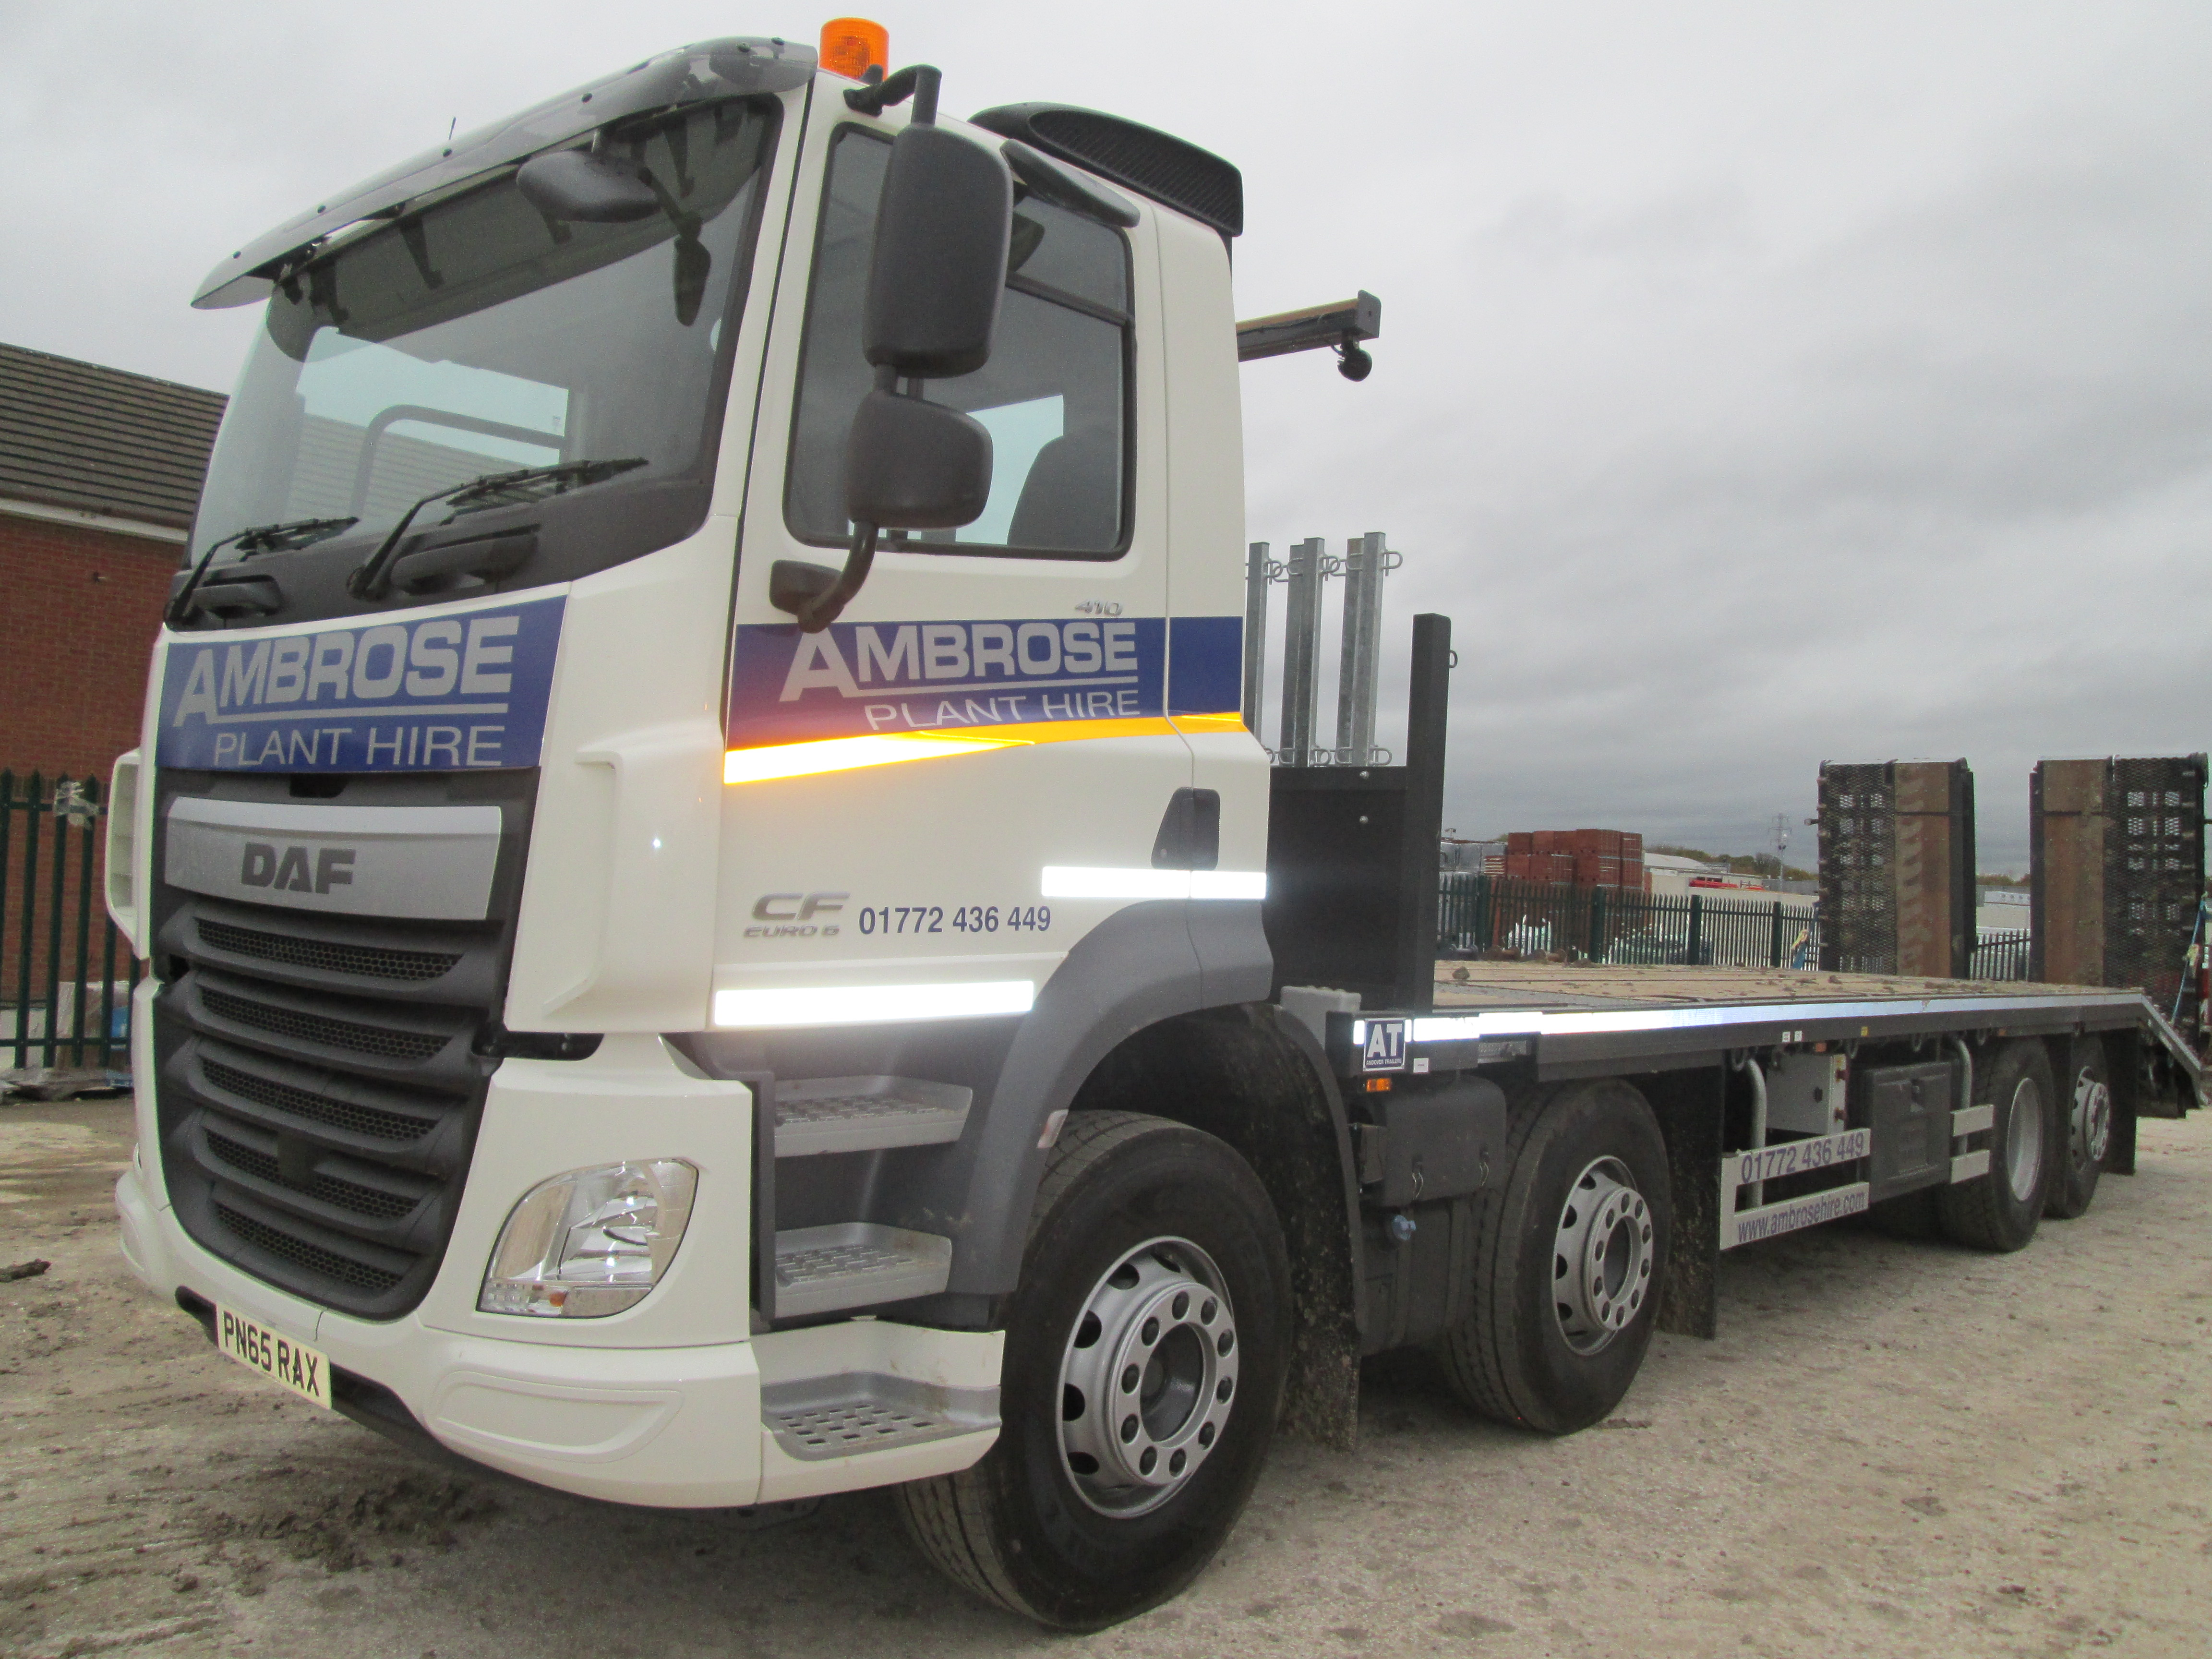 Ambrose Hire take delivery of new DAF Euro 6 | Ambrose Plant